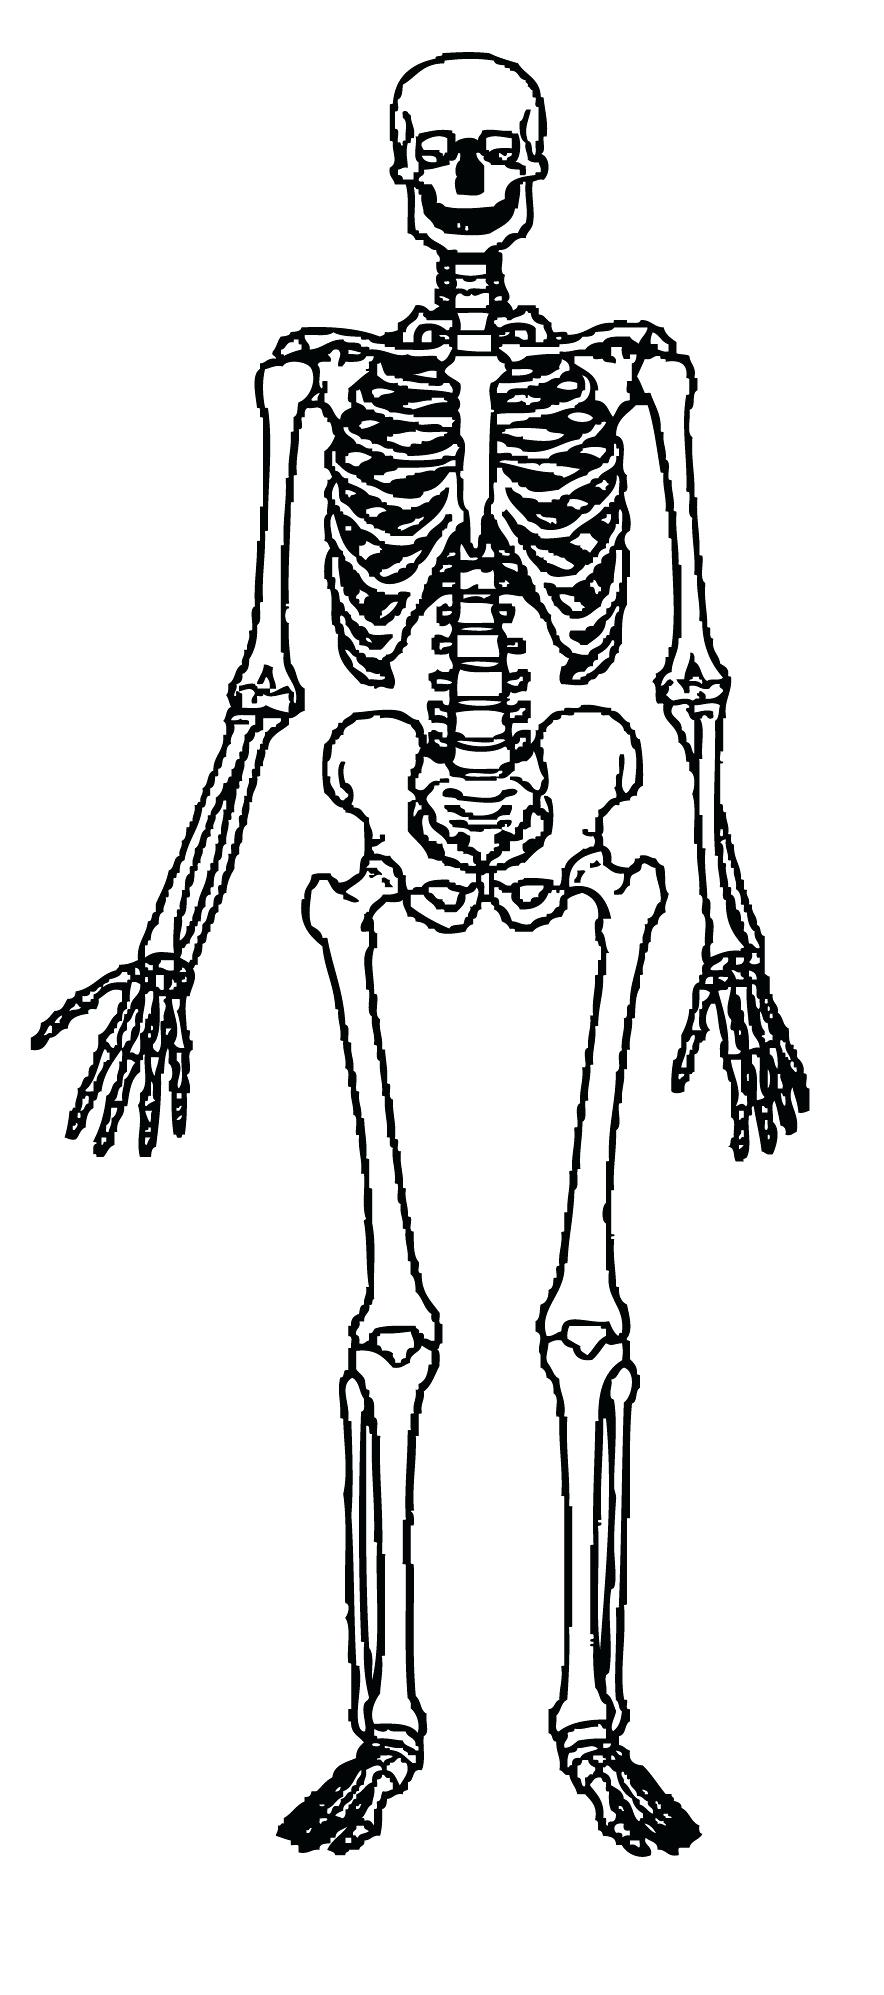 skeletal muscular system coloring pages - photo#25